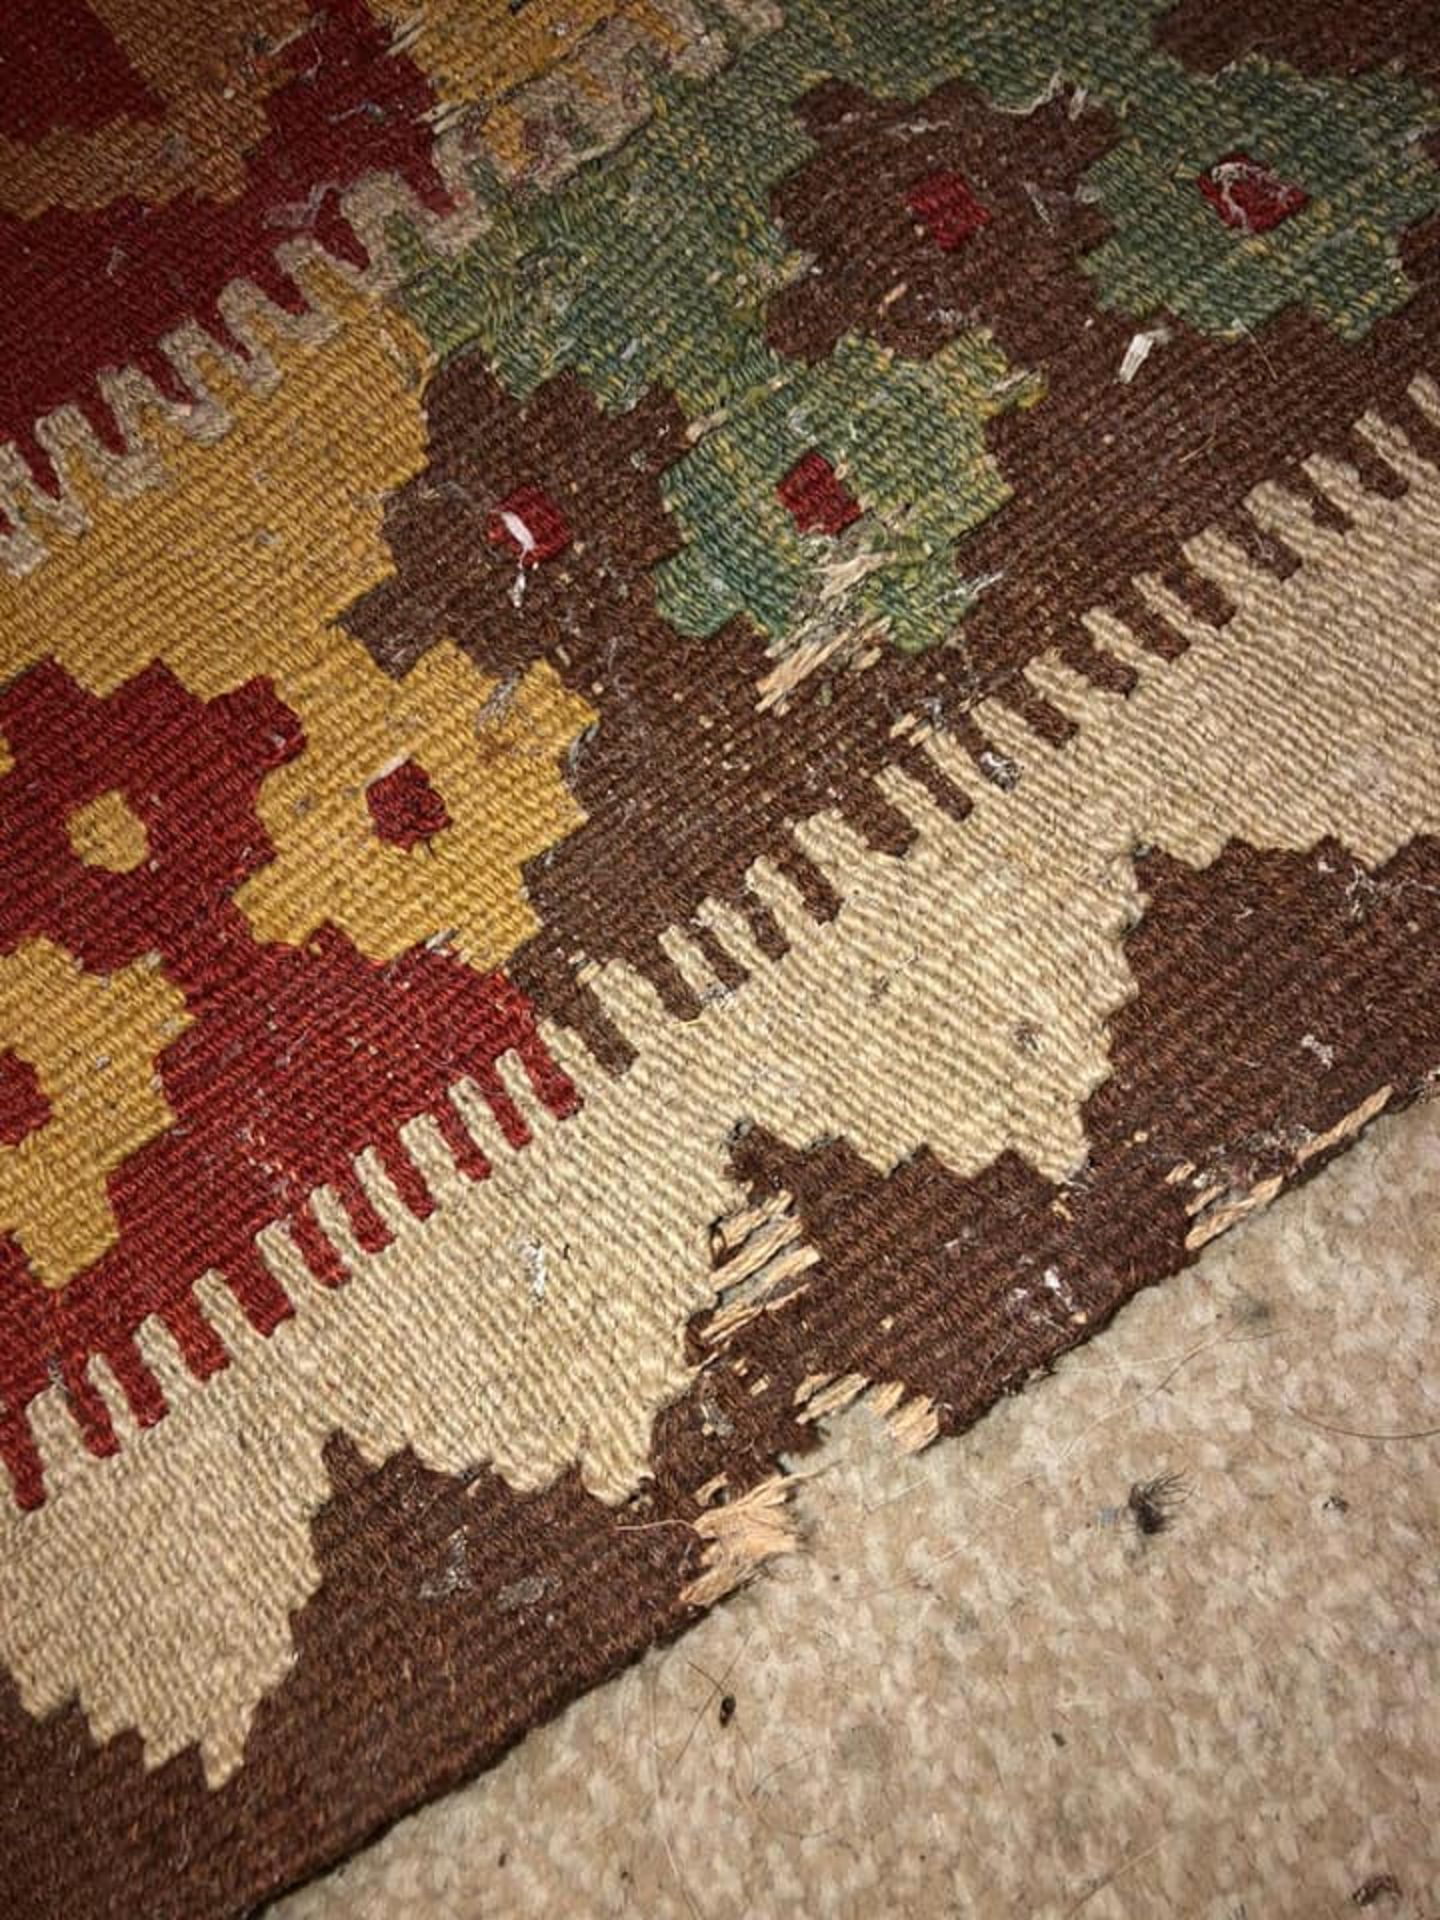 A Vintage Afghani Woven Galmori Rug 100% Short Wool Pile Handmade 180 X 100cm Complete With - Image 3 of 5